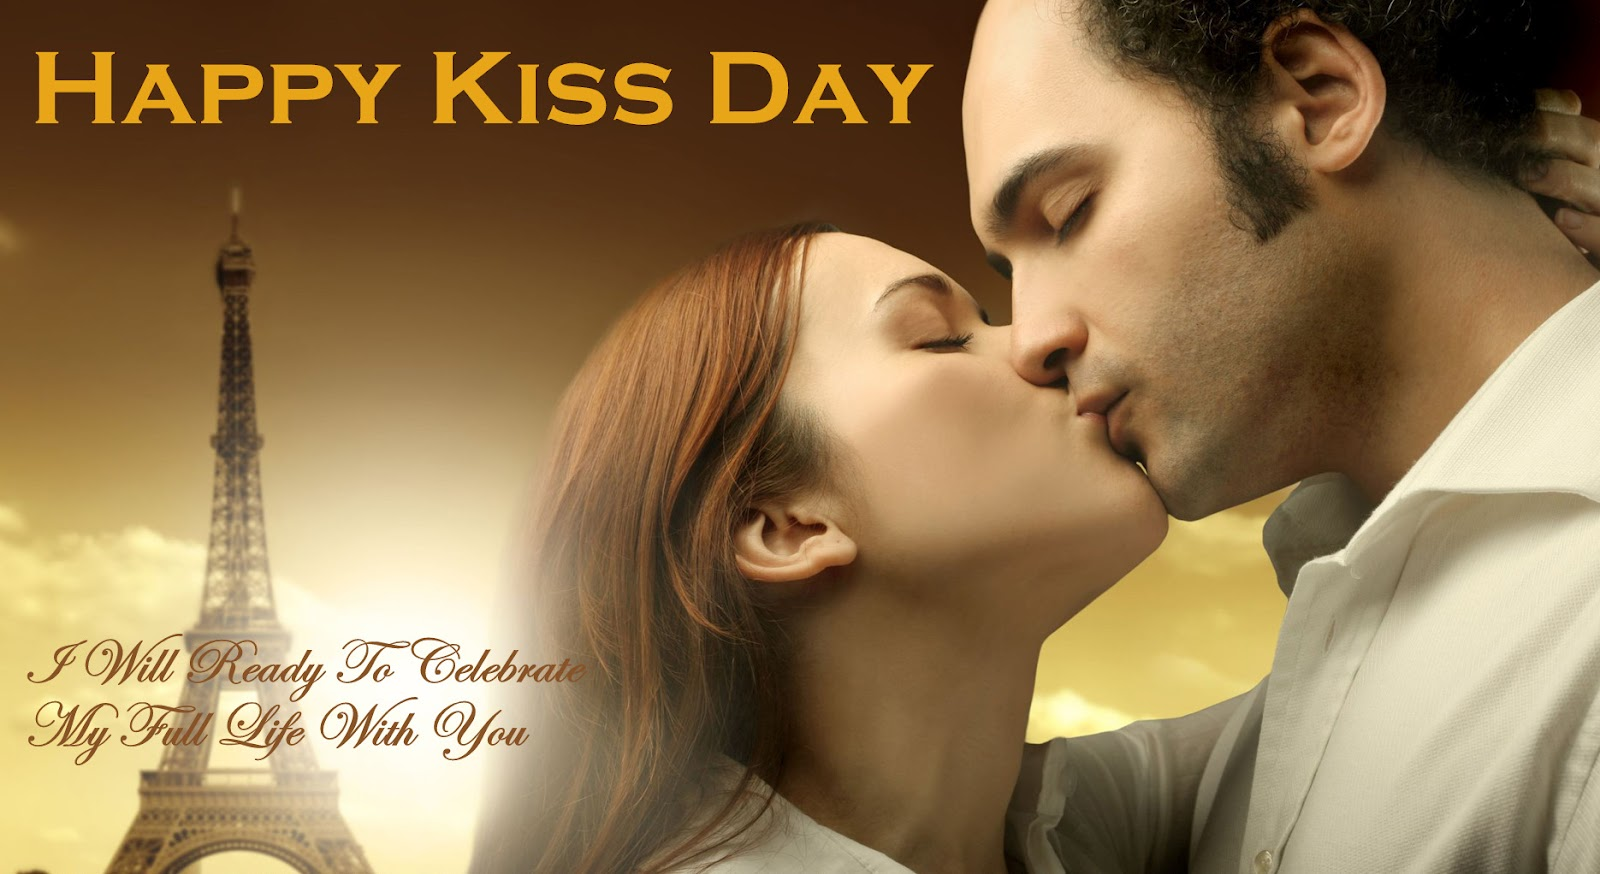 Happy Kiss Day 2017 HD Image For Girlfriend & Boyfriend